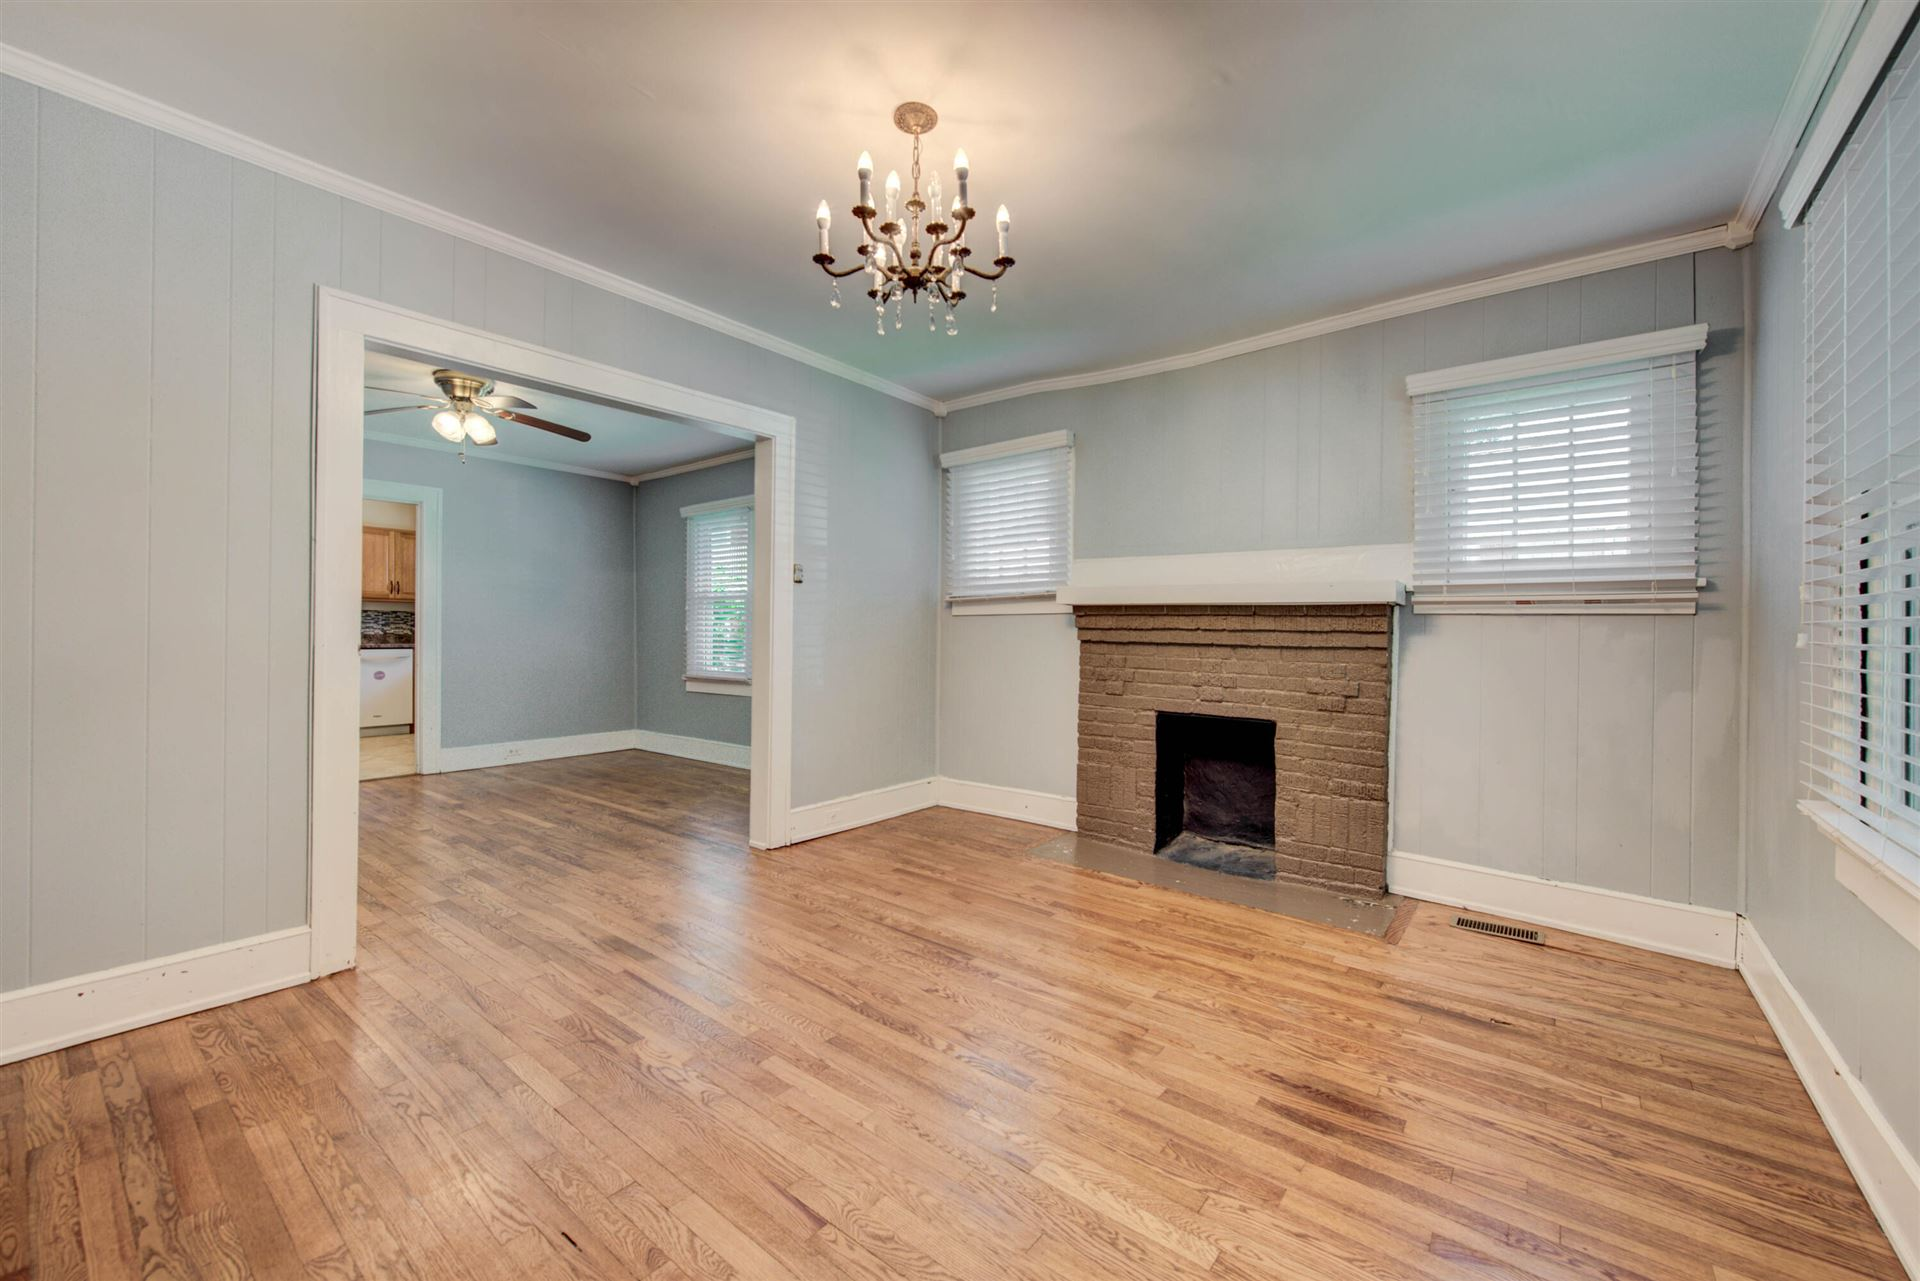 Photo of 912 White Ave, Maryville, TN 37803 (MLS # 1156901)